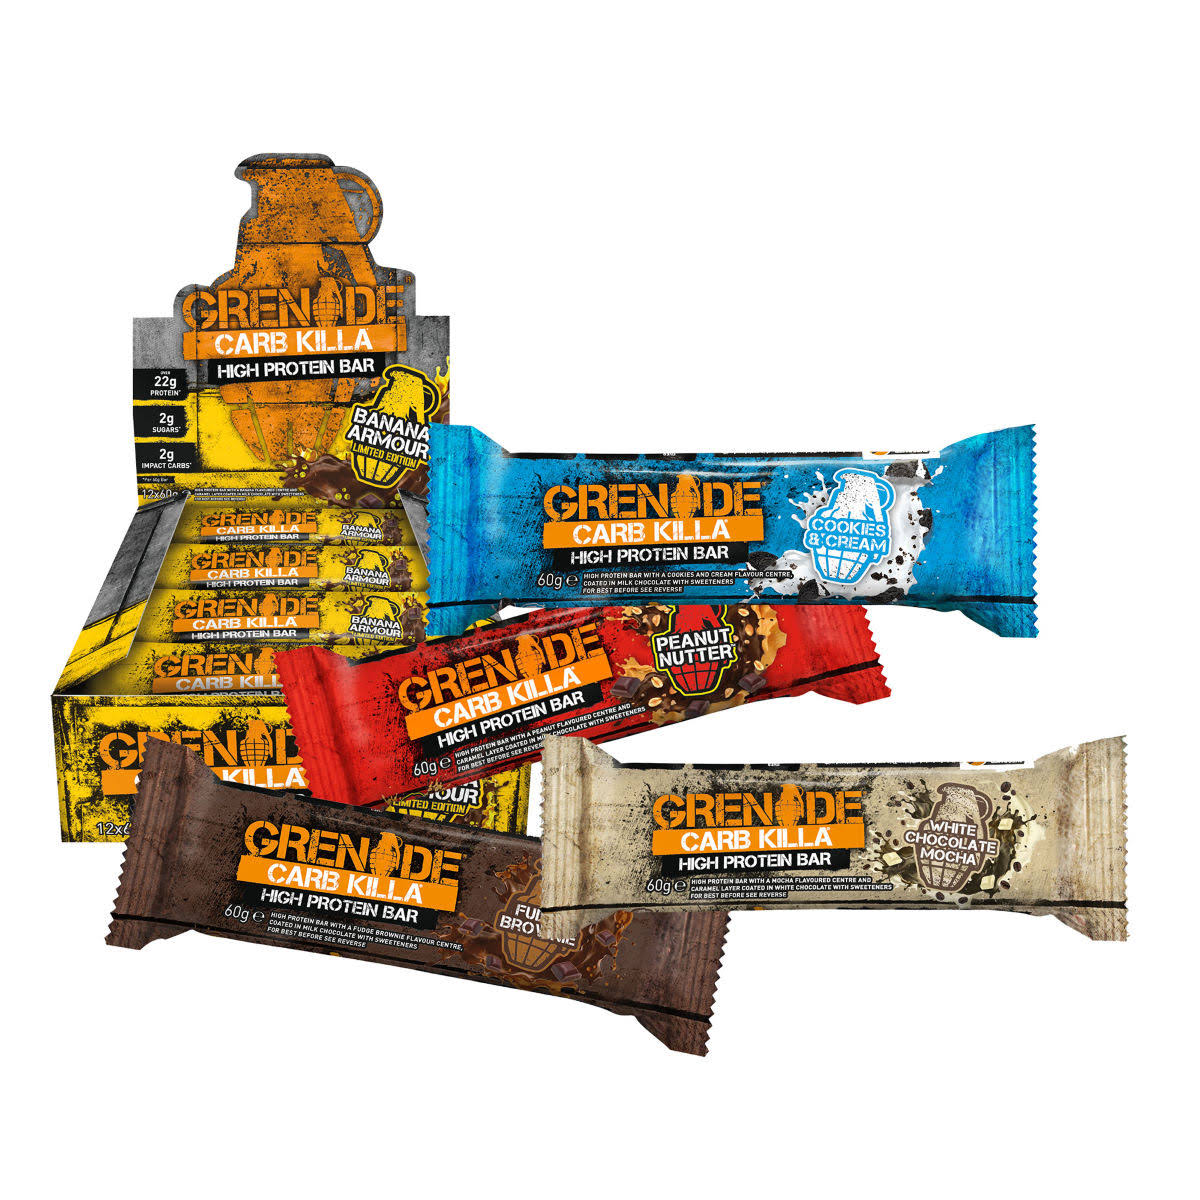 Grenade Carb Killa High Protein Bar Selection Box - 12ct, 60g